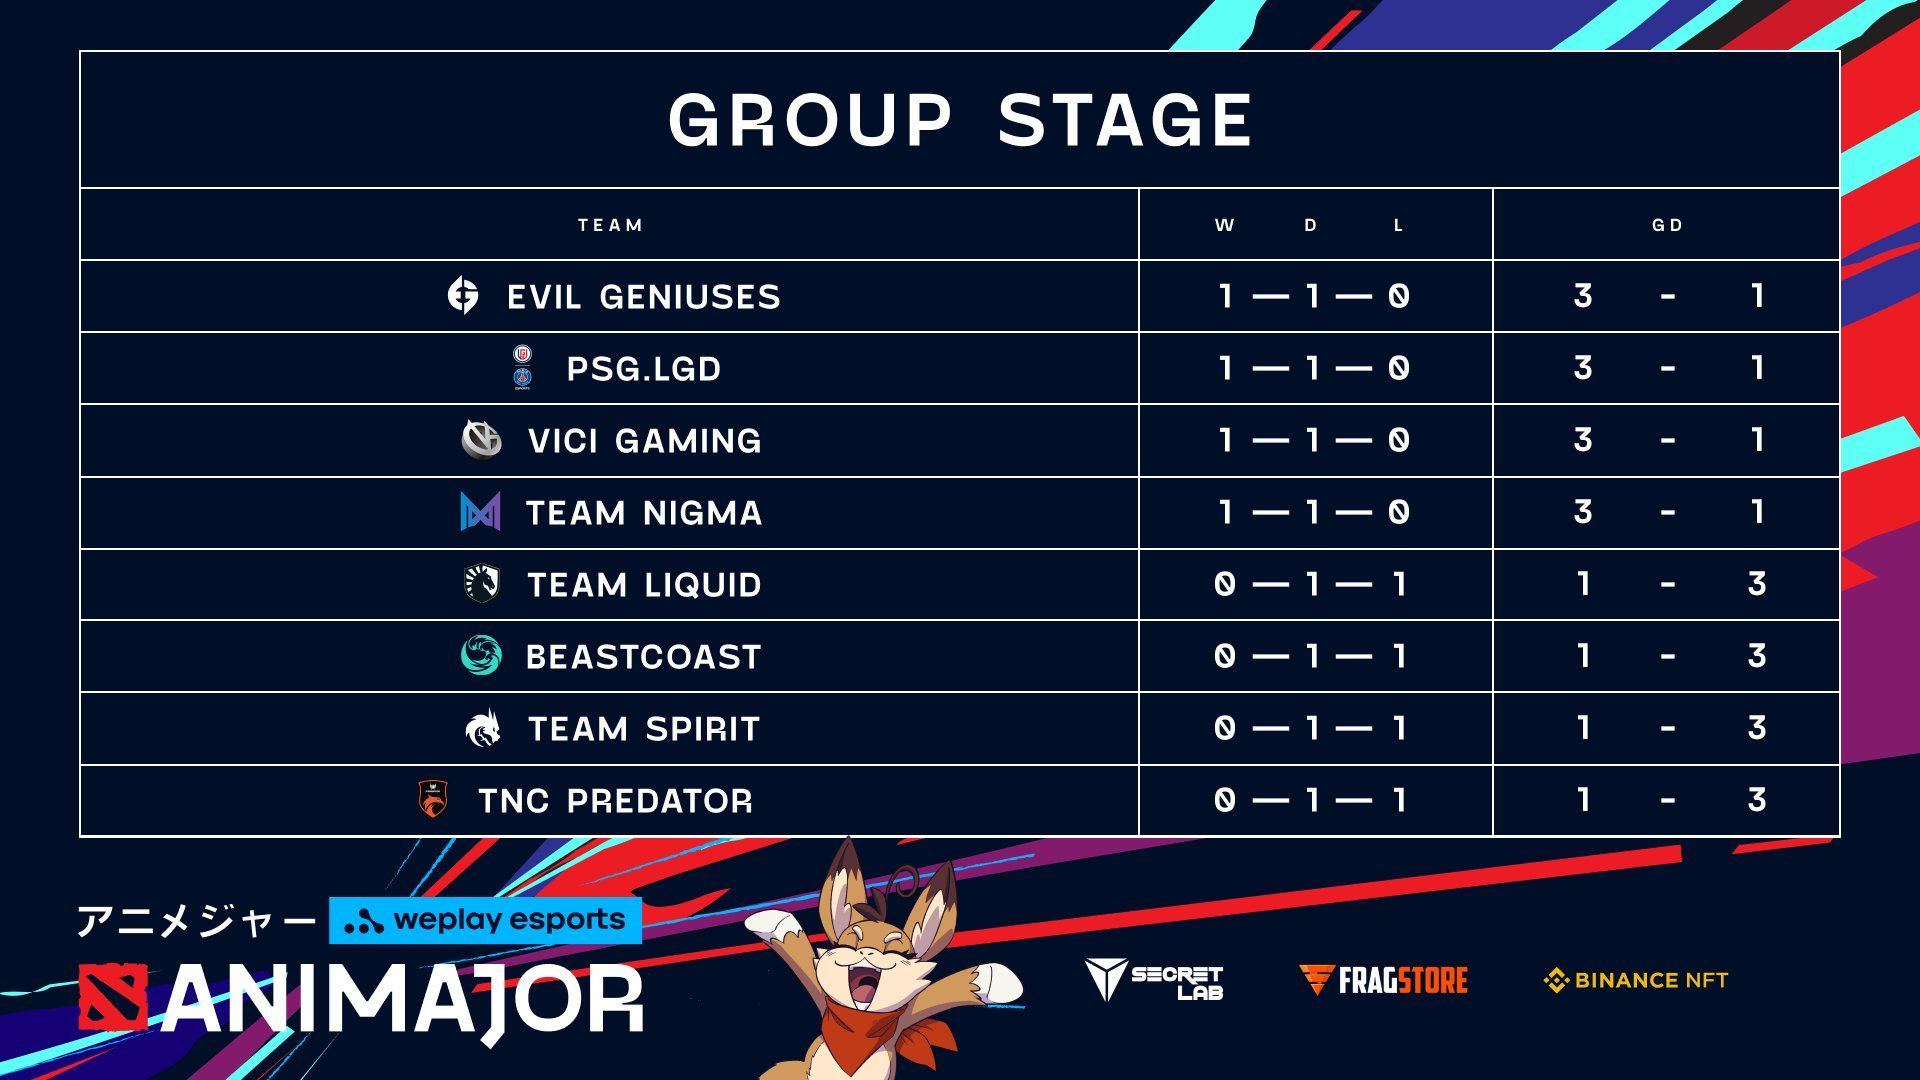 Group stage day 1 standings of the WePlay AniMajor